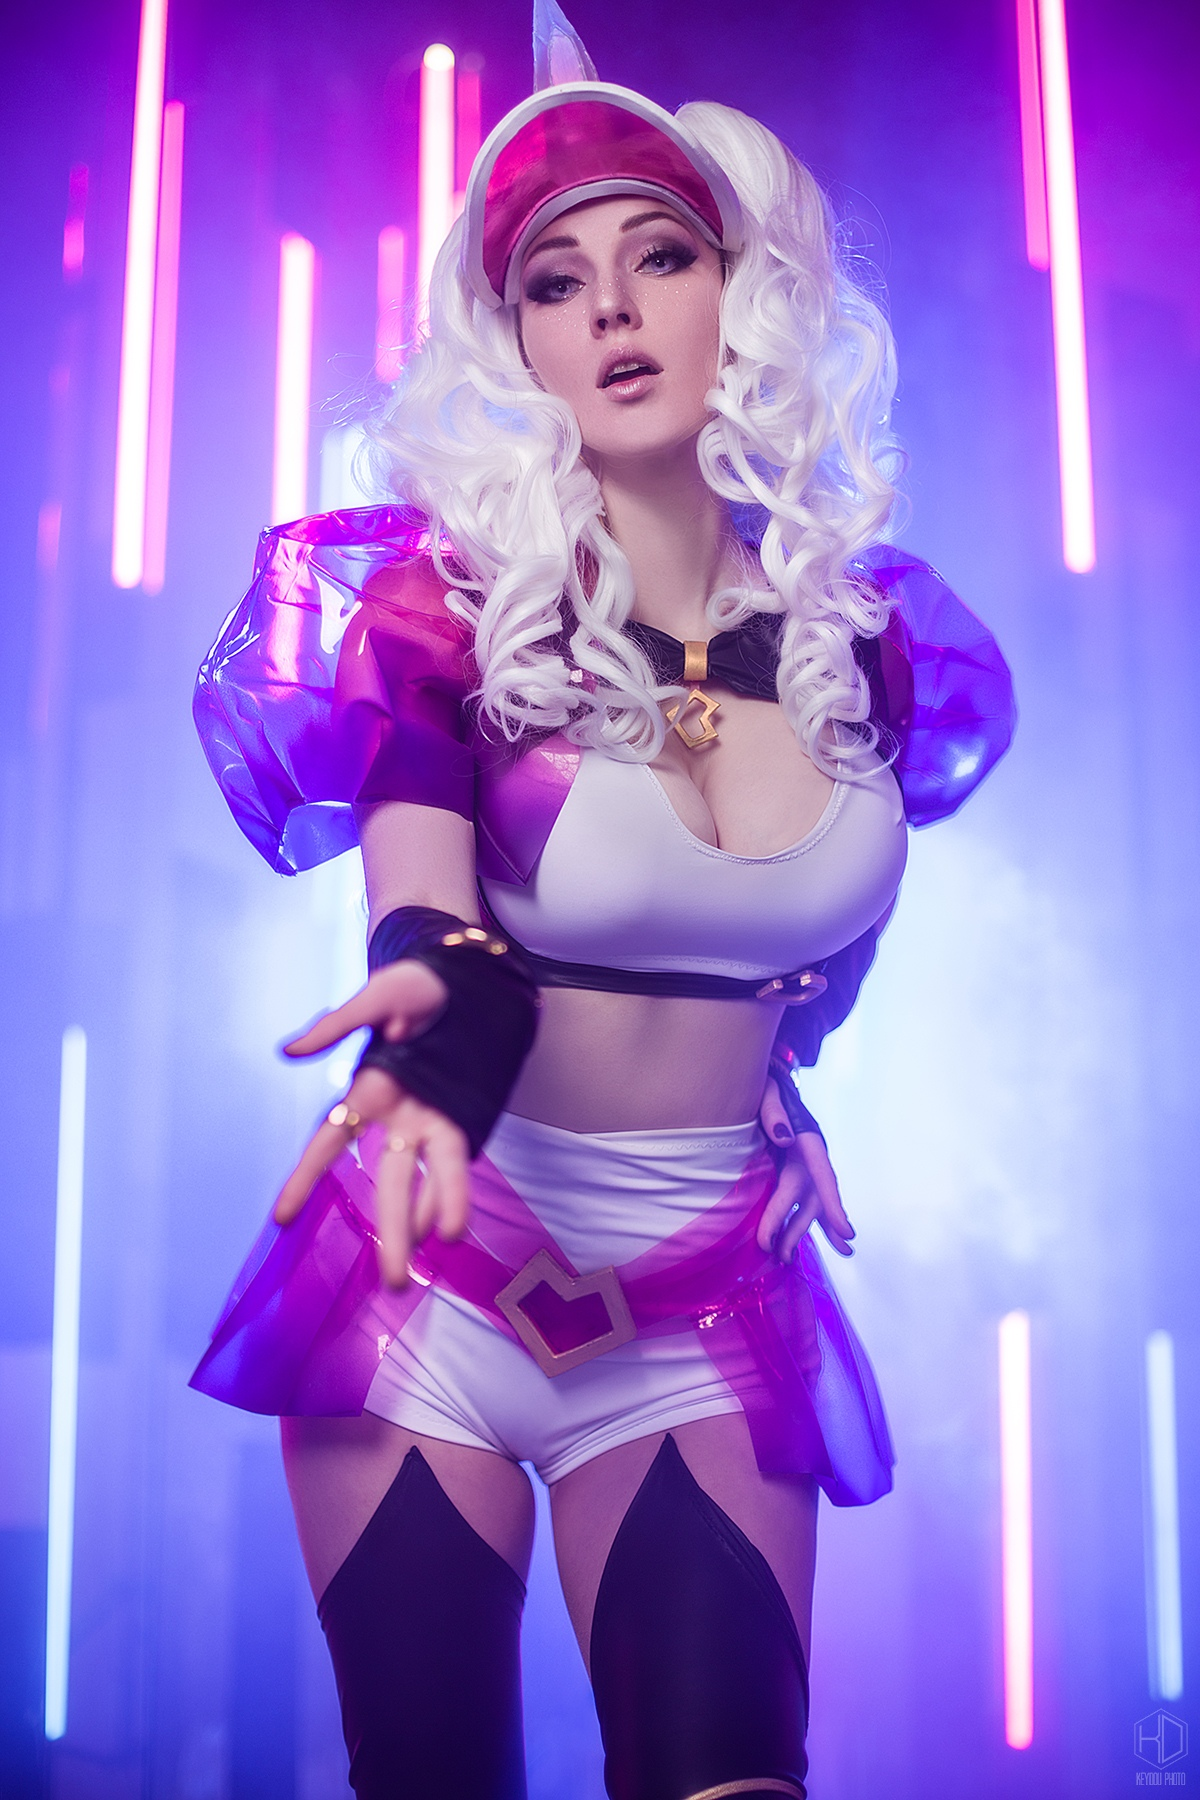 Kate Smirnova – KDA Soraka – League of Legends 7